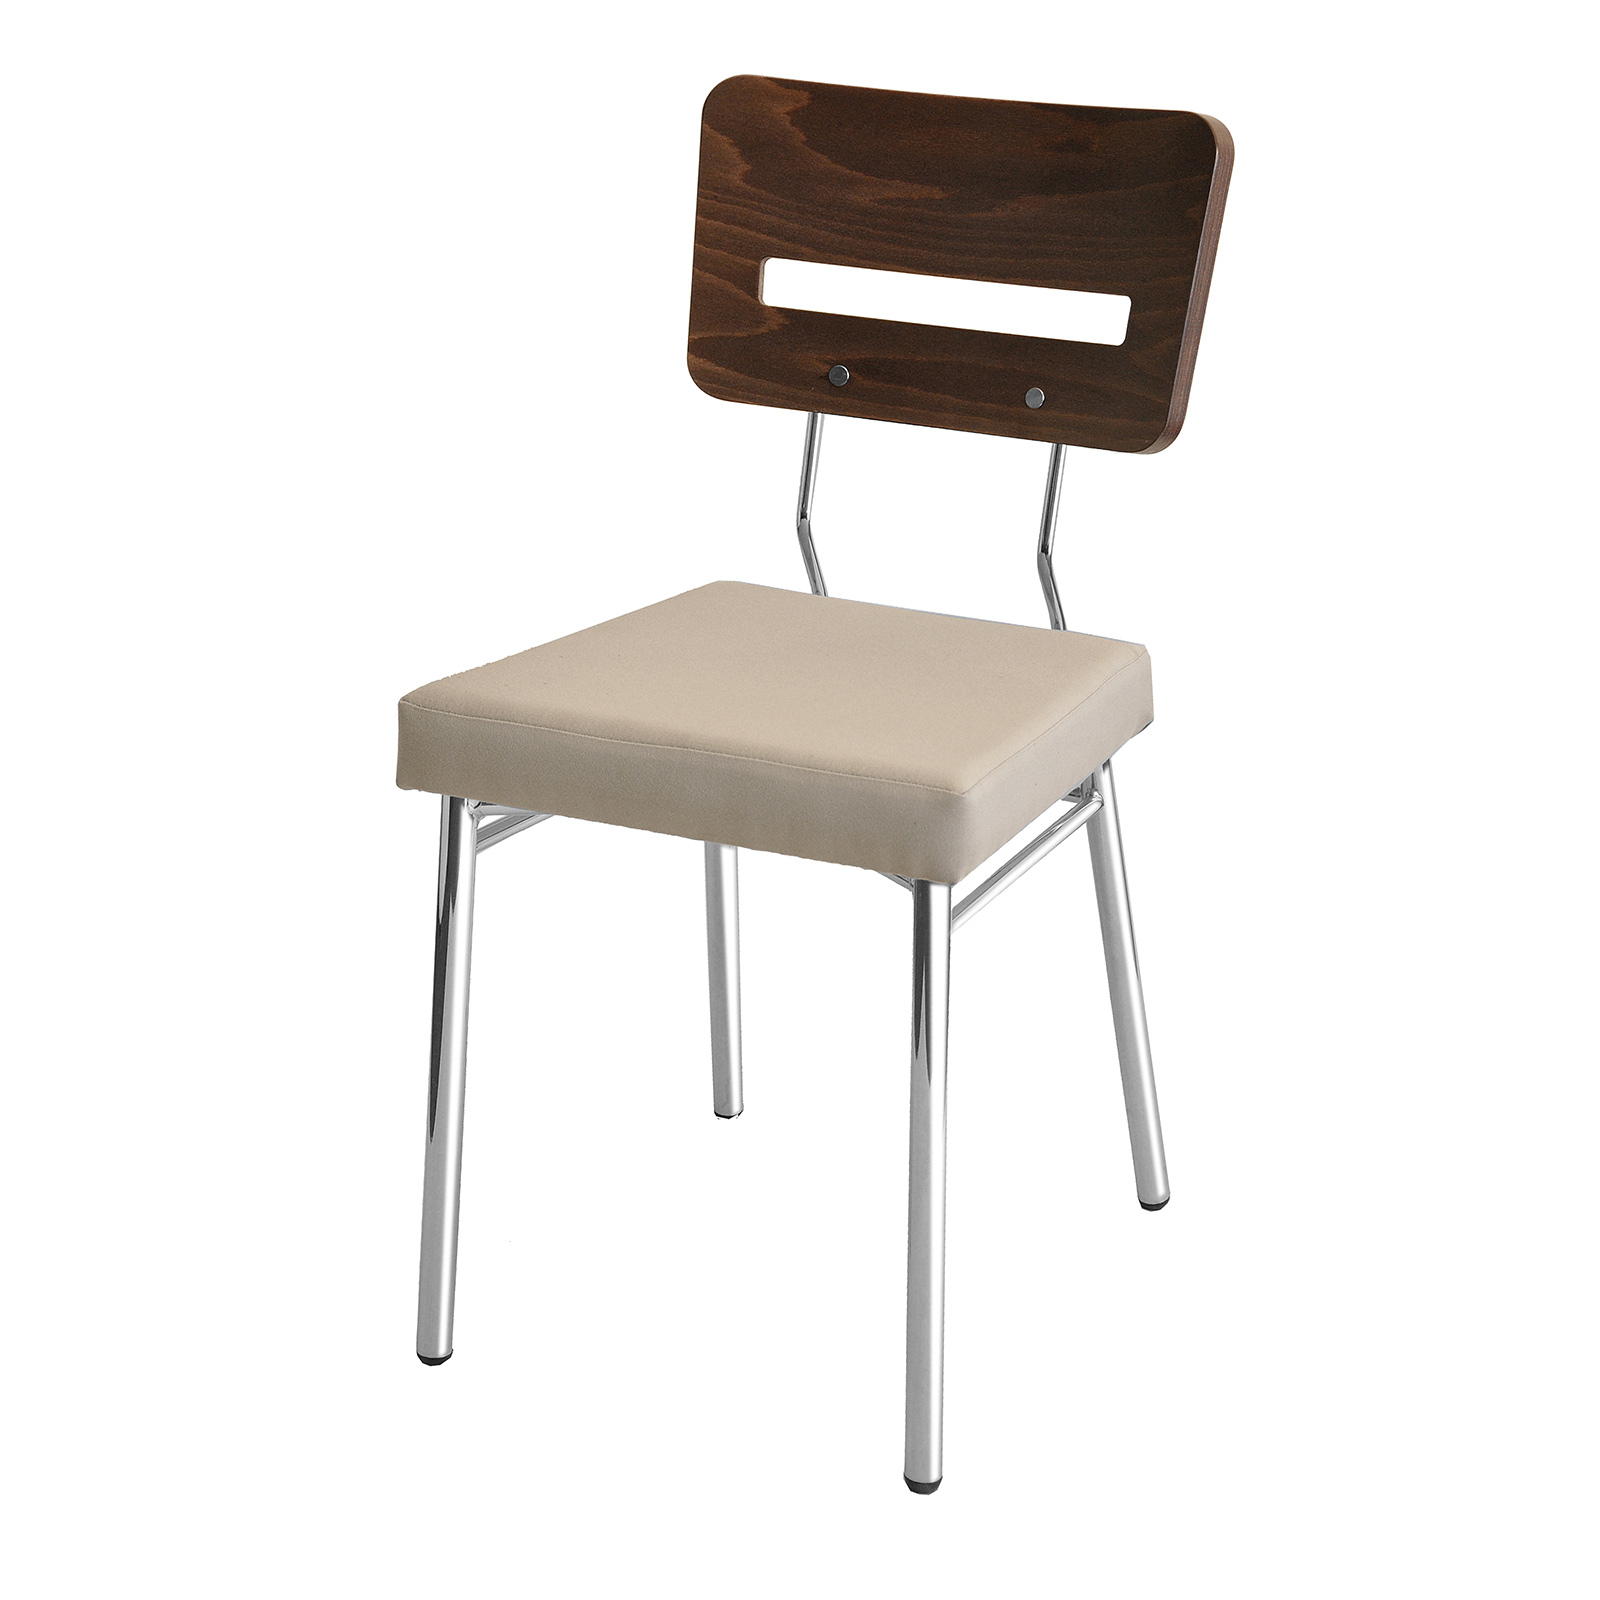 Florida Seating CN-MADISON S GR5 chair, side, indoor